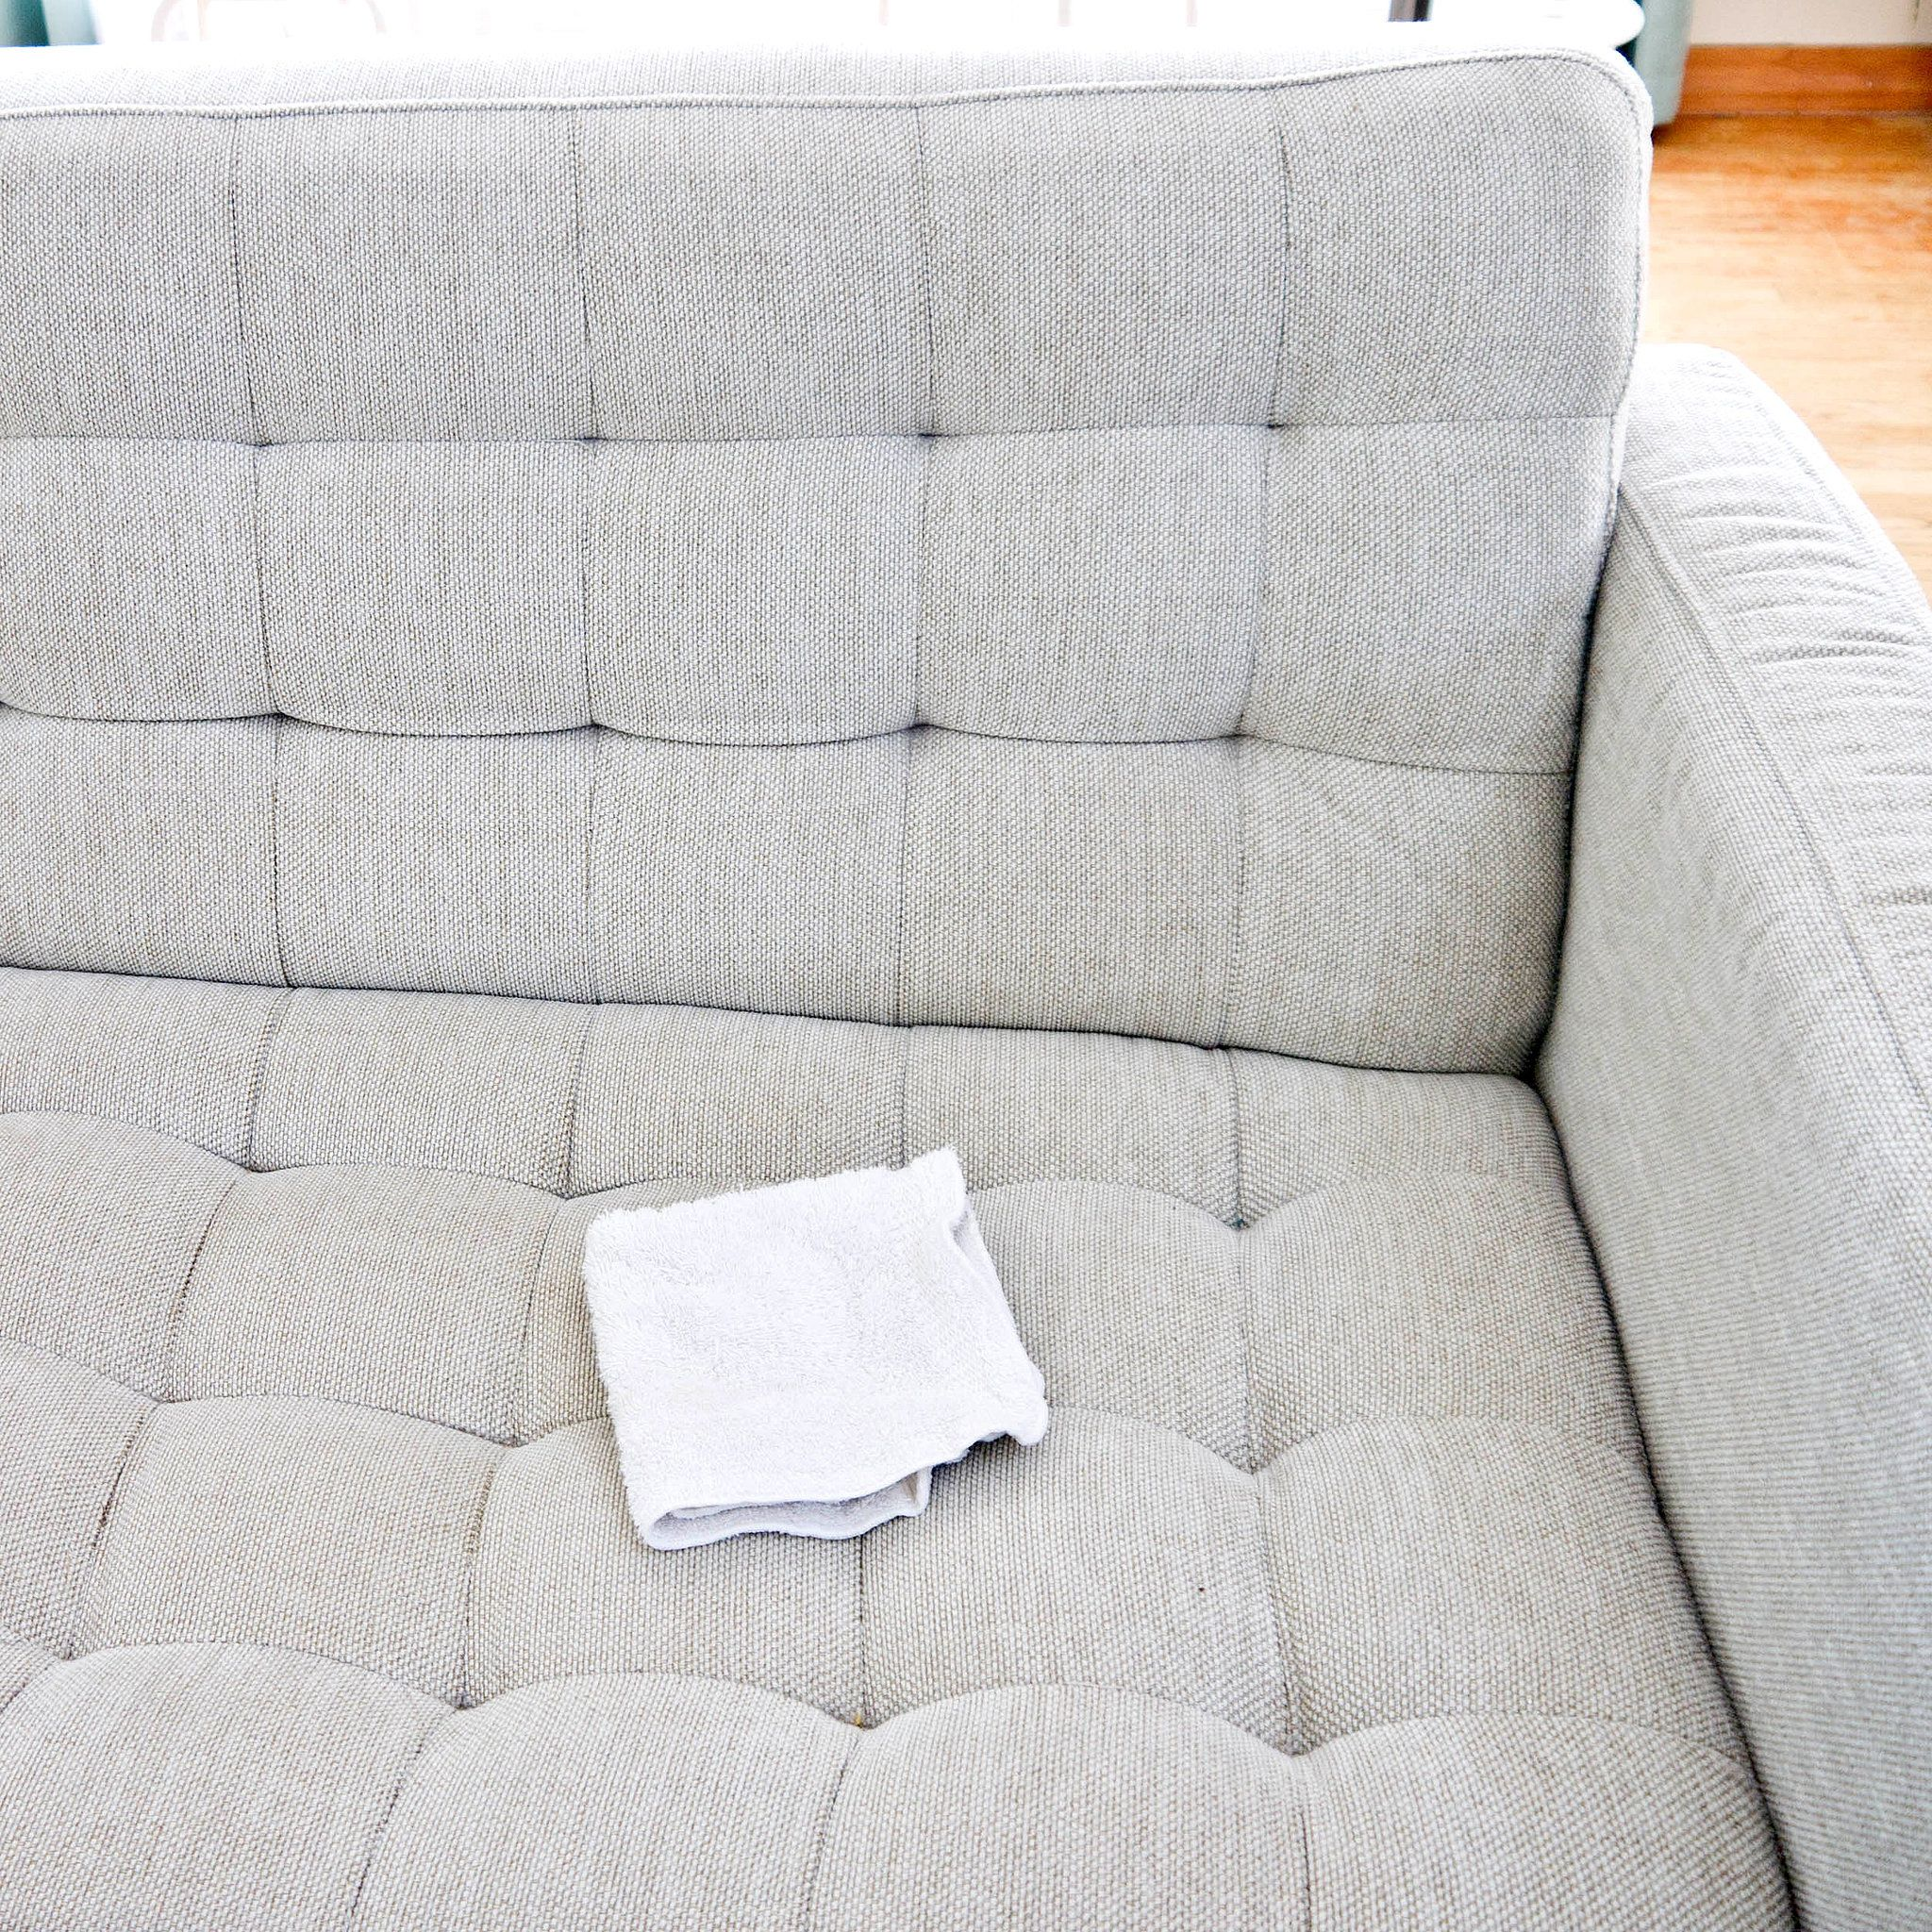 Stoff Couch Reinigen Deep Clean Your Natural Fabric Couch For Better Snuggling Home